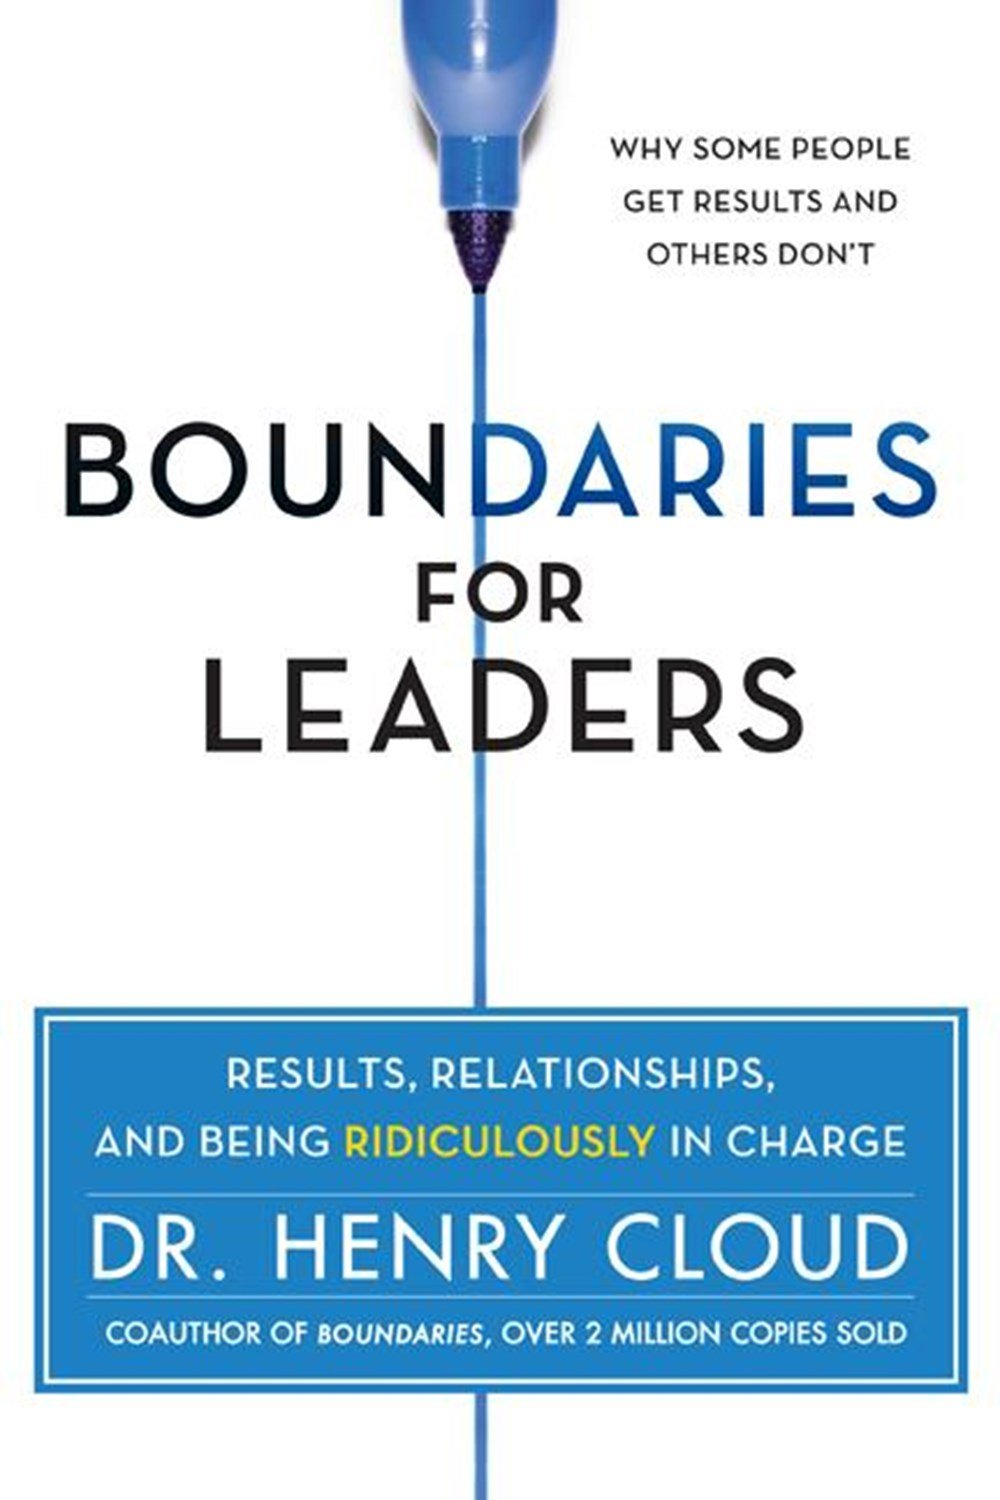 Boundaries for Leaders Results, Relationships, and Being Ridiculously in Charge